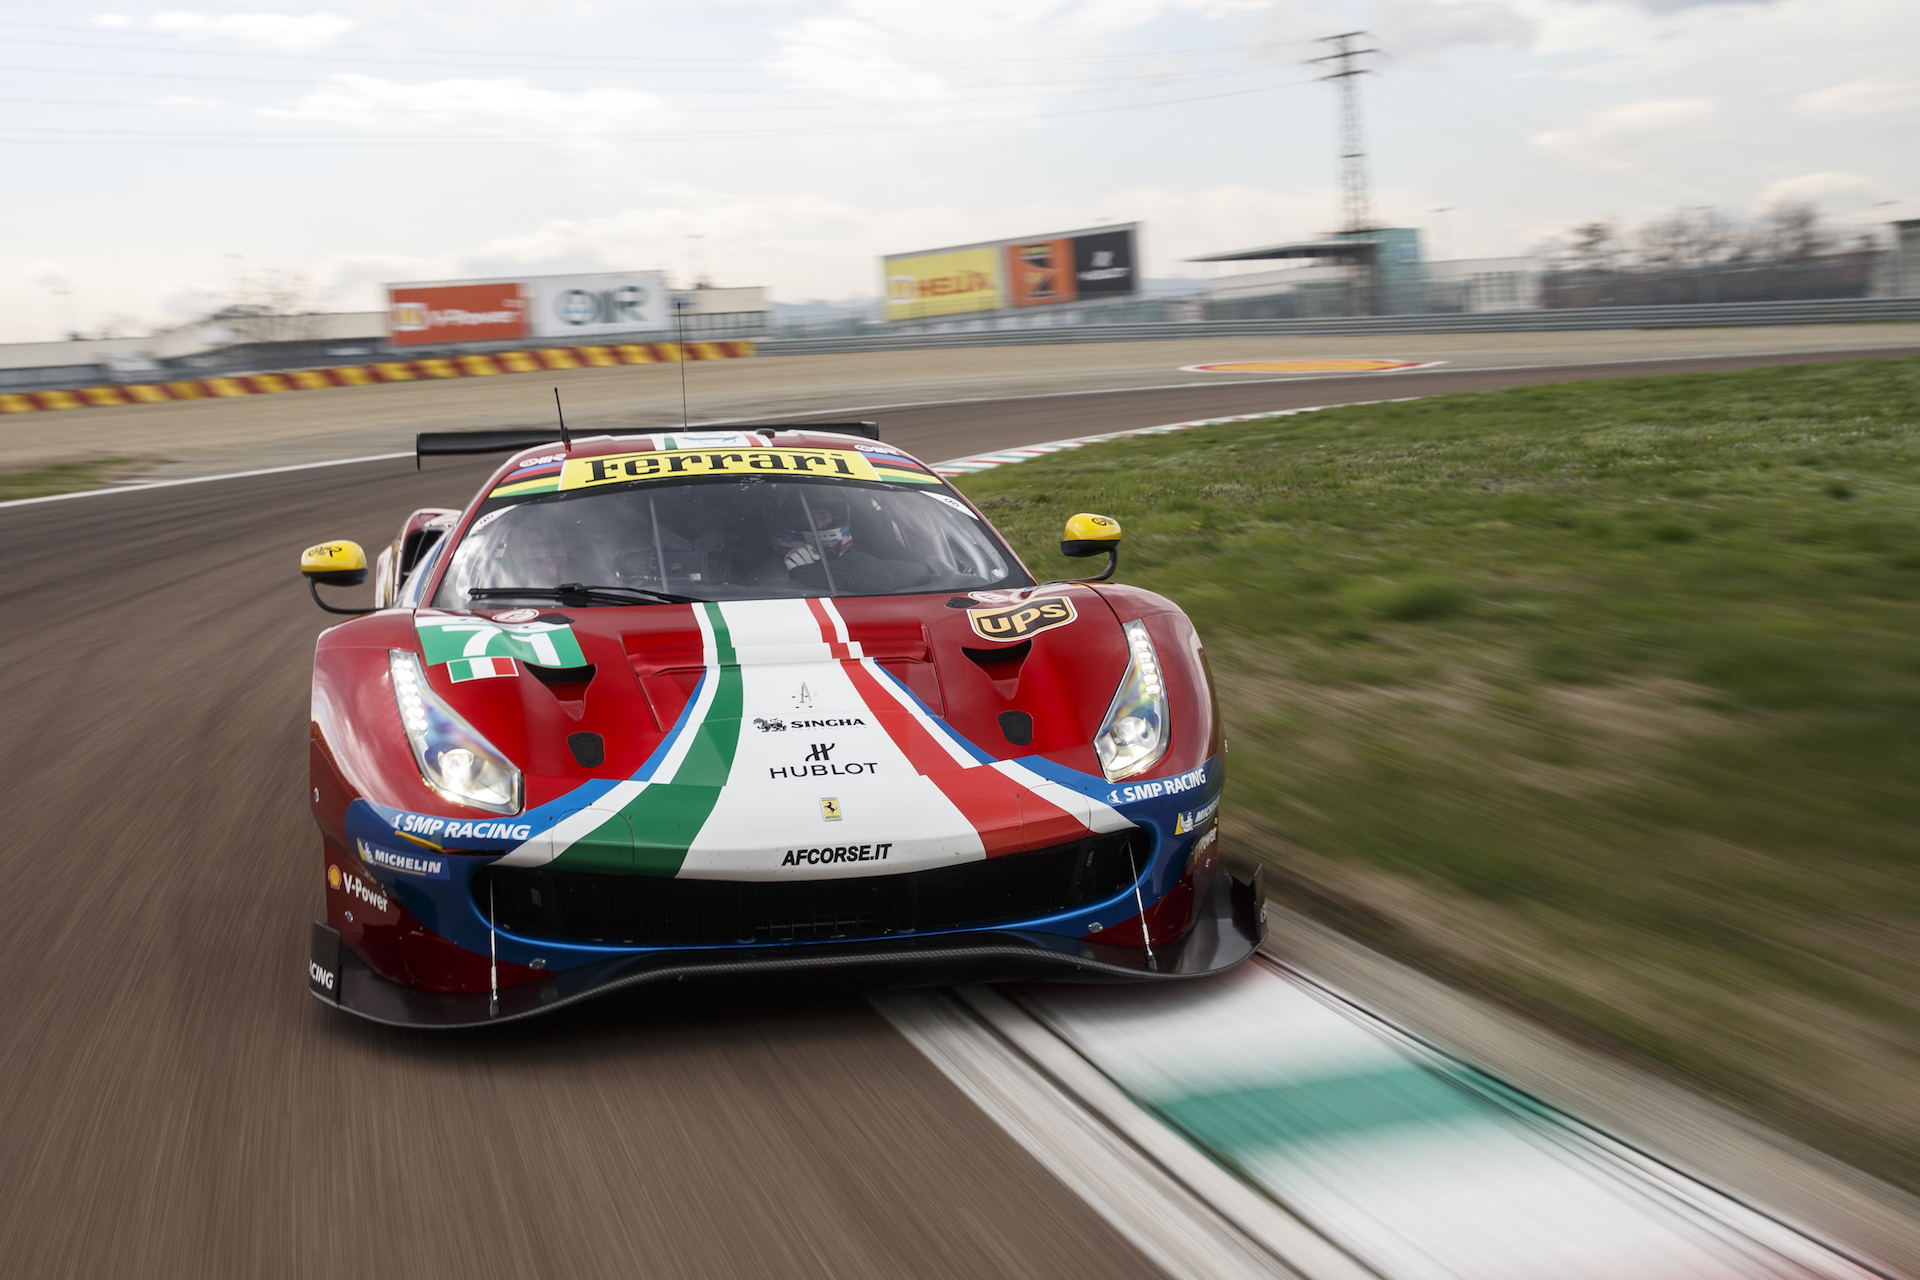 Ferrari 488 Gte Evo Debuts At Fiorano Aiming For Victory